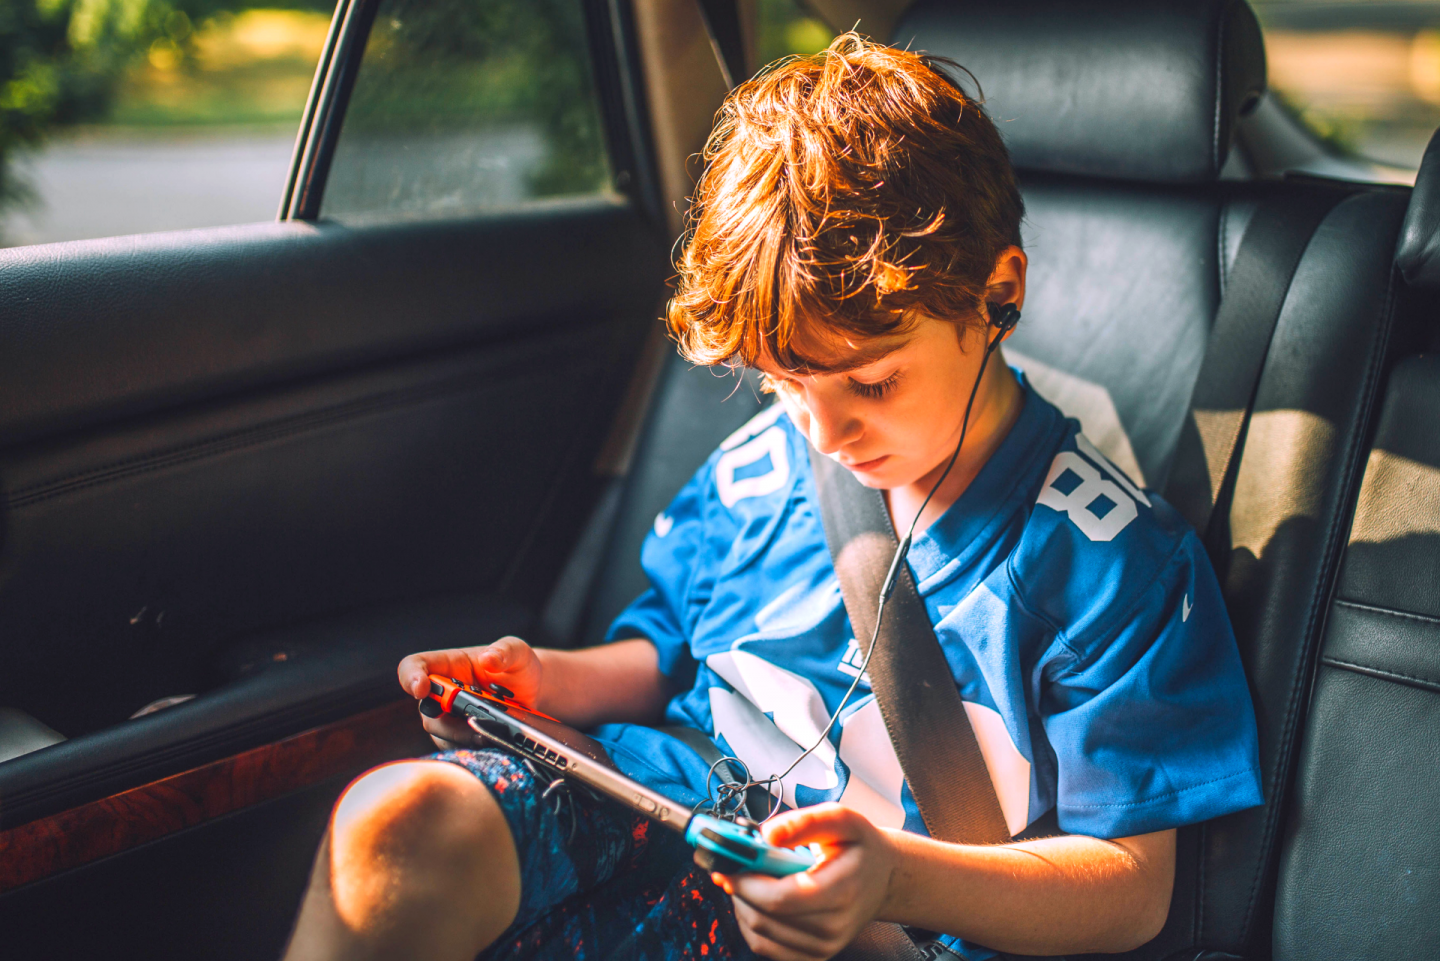 Top Tips to Reduce Car Sickness in Kids